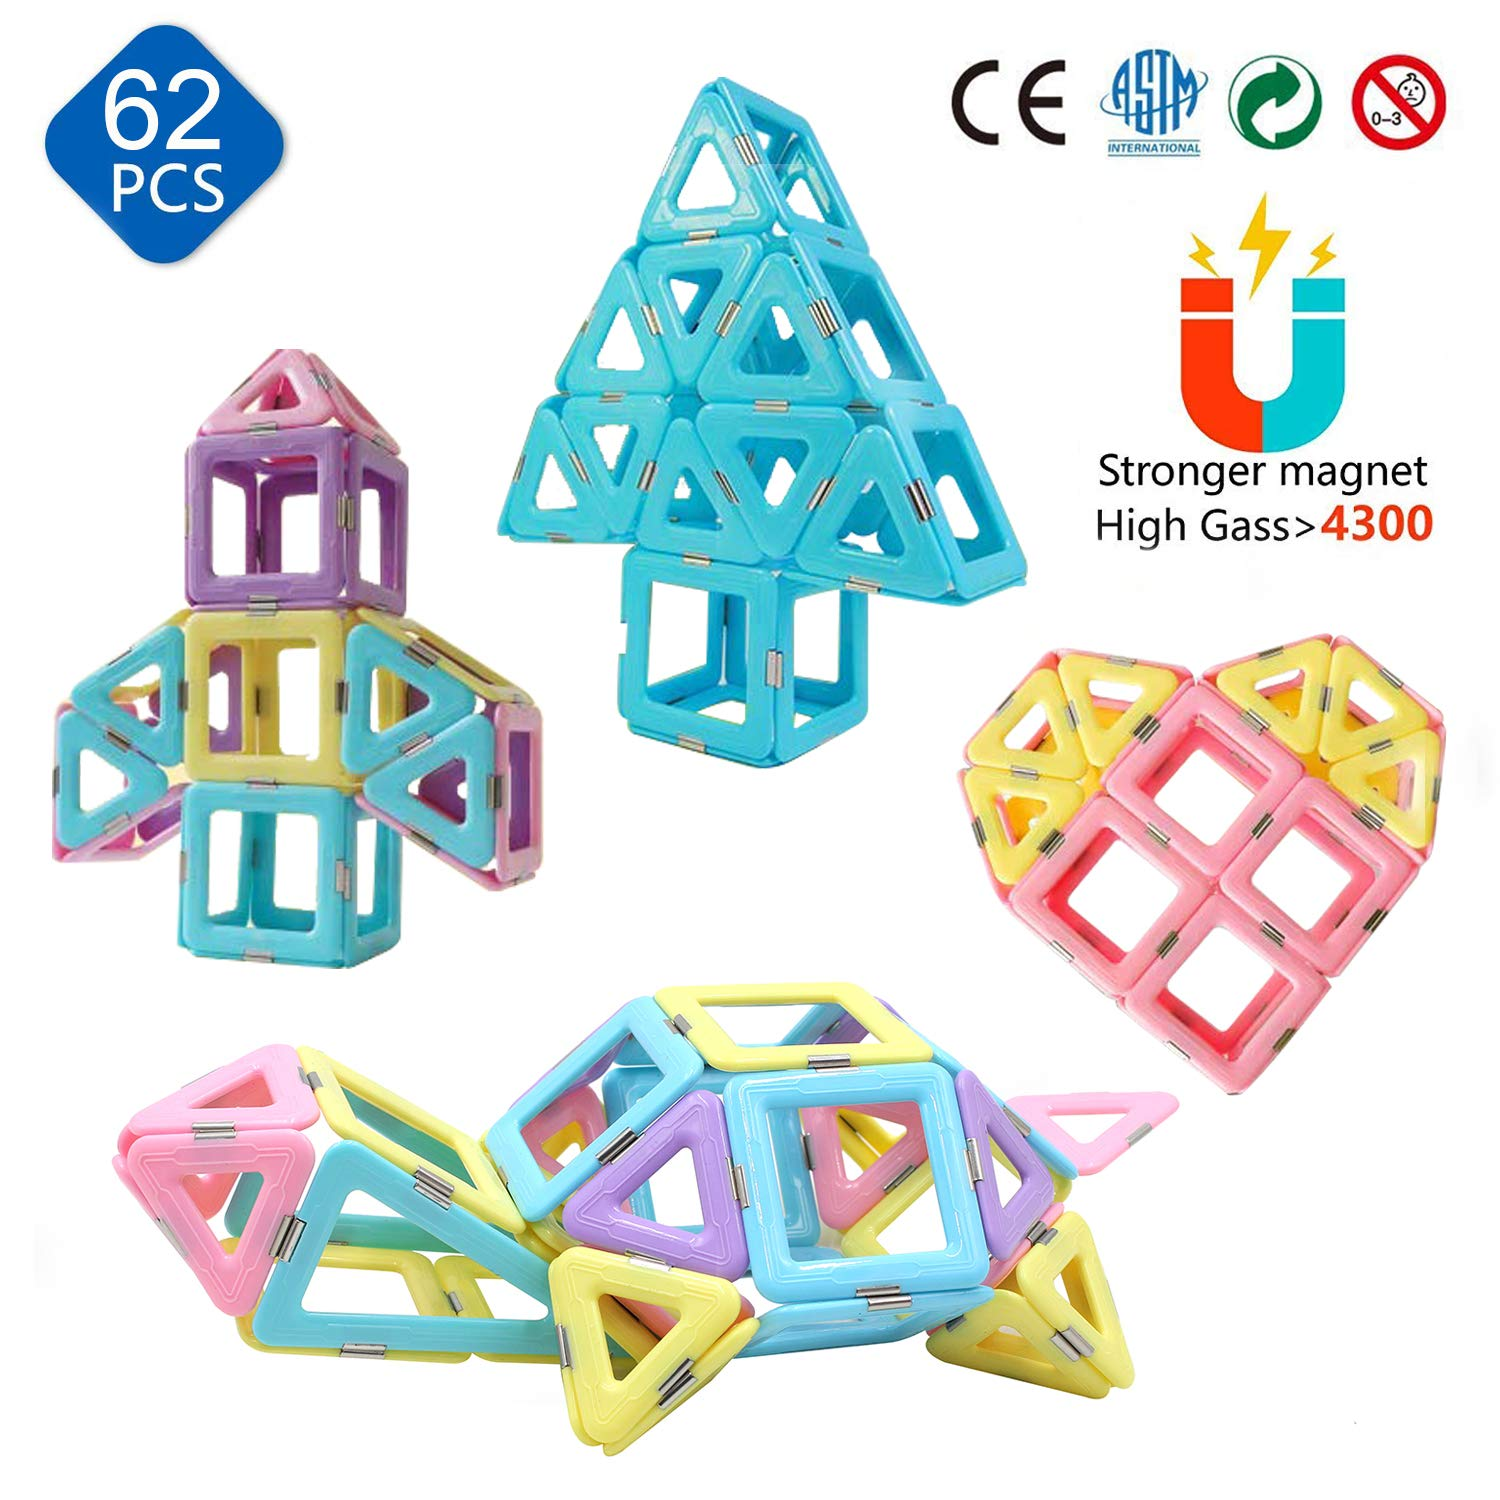 FryCWHQ 62PCS Castle Magnetic Blocks for Boys Girls Kids -3D Macaron Colors Learning & Development Building Blocks Toys by FryCWHQ